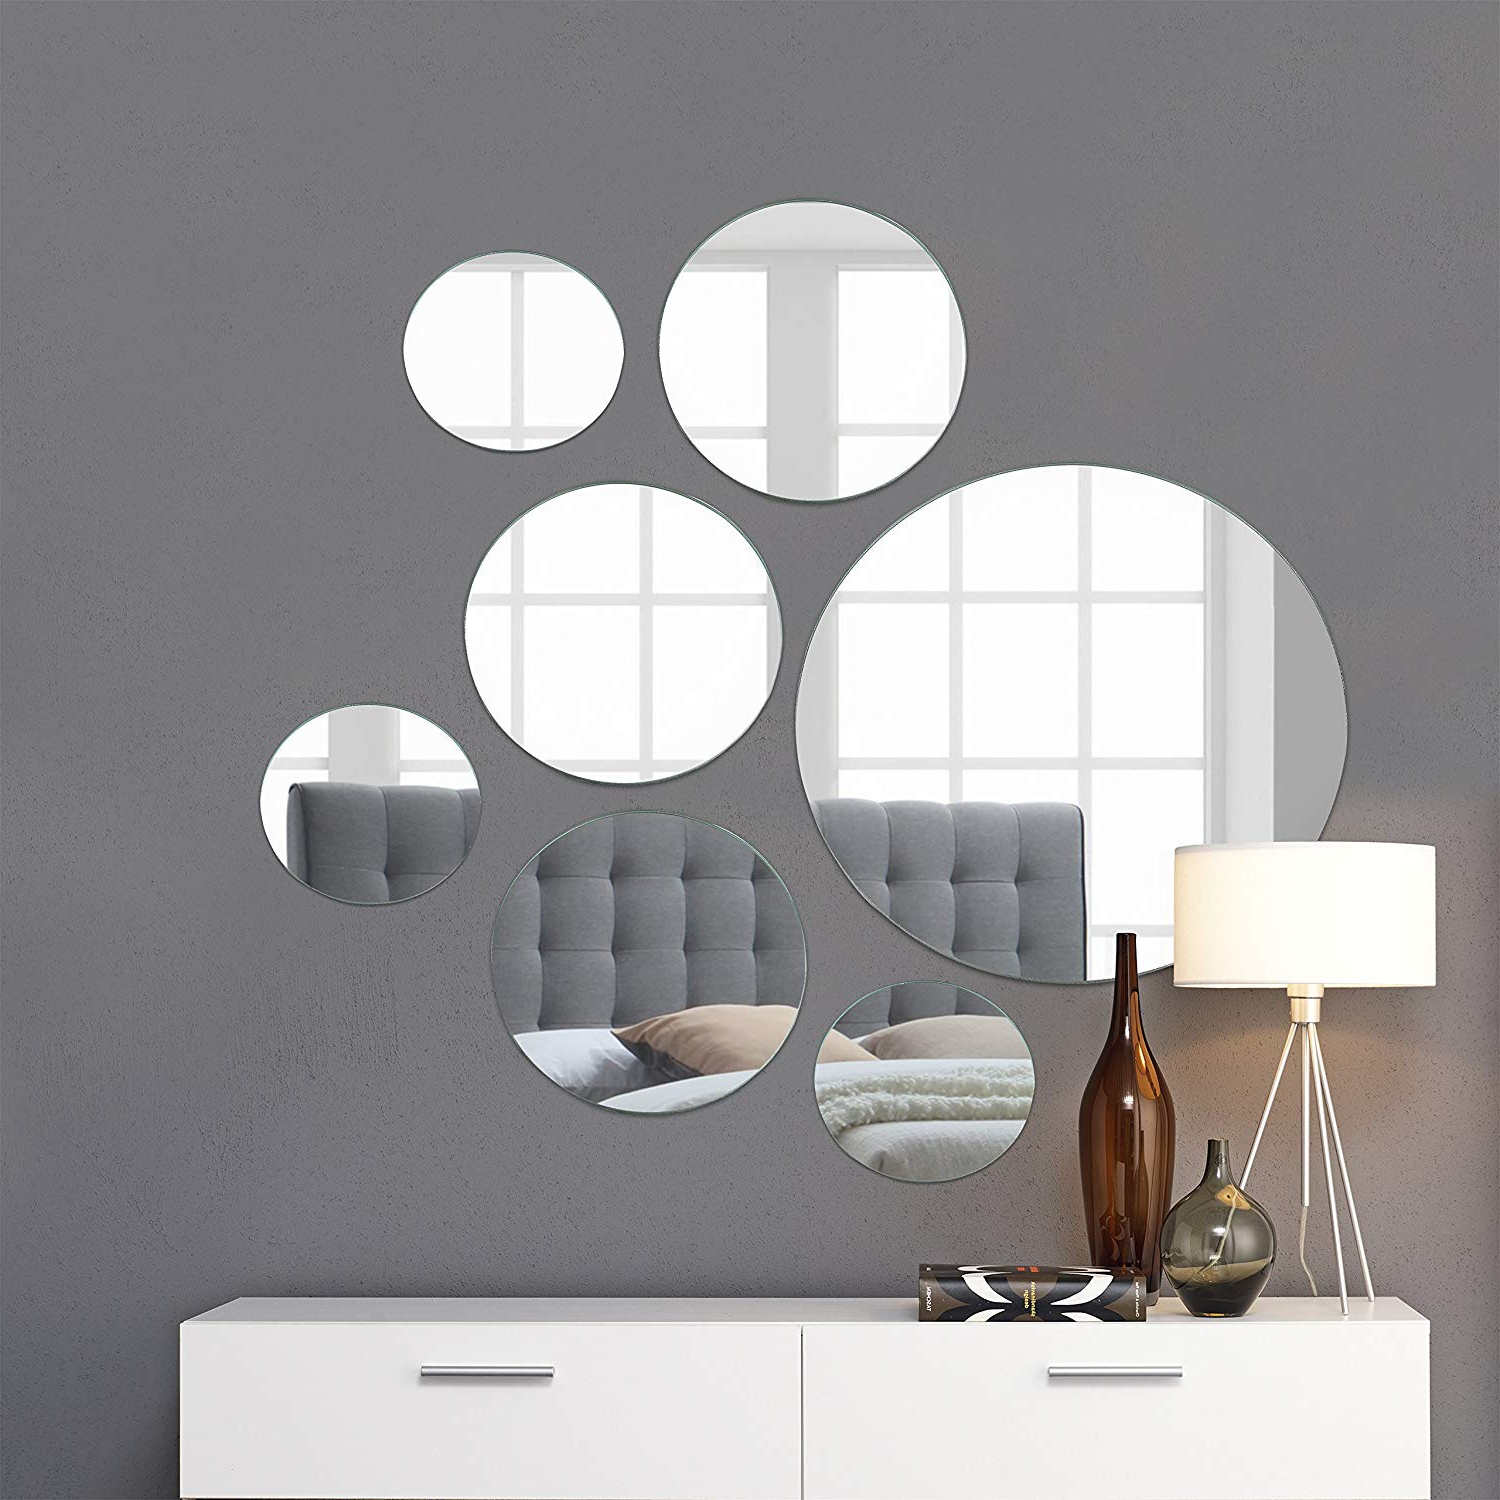 "Light In The Dark Medium Round Mirror Wall Mounted Assorted Sizes (1x10"", 3x7"", 3x4"") – Set Of 7 Round Glass Mirrors Wall Decoration For Living Room, Regarding Current Round Wall Mirror Sets (View 2 of 20)"